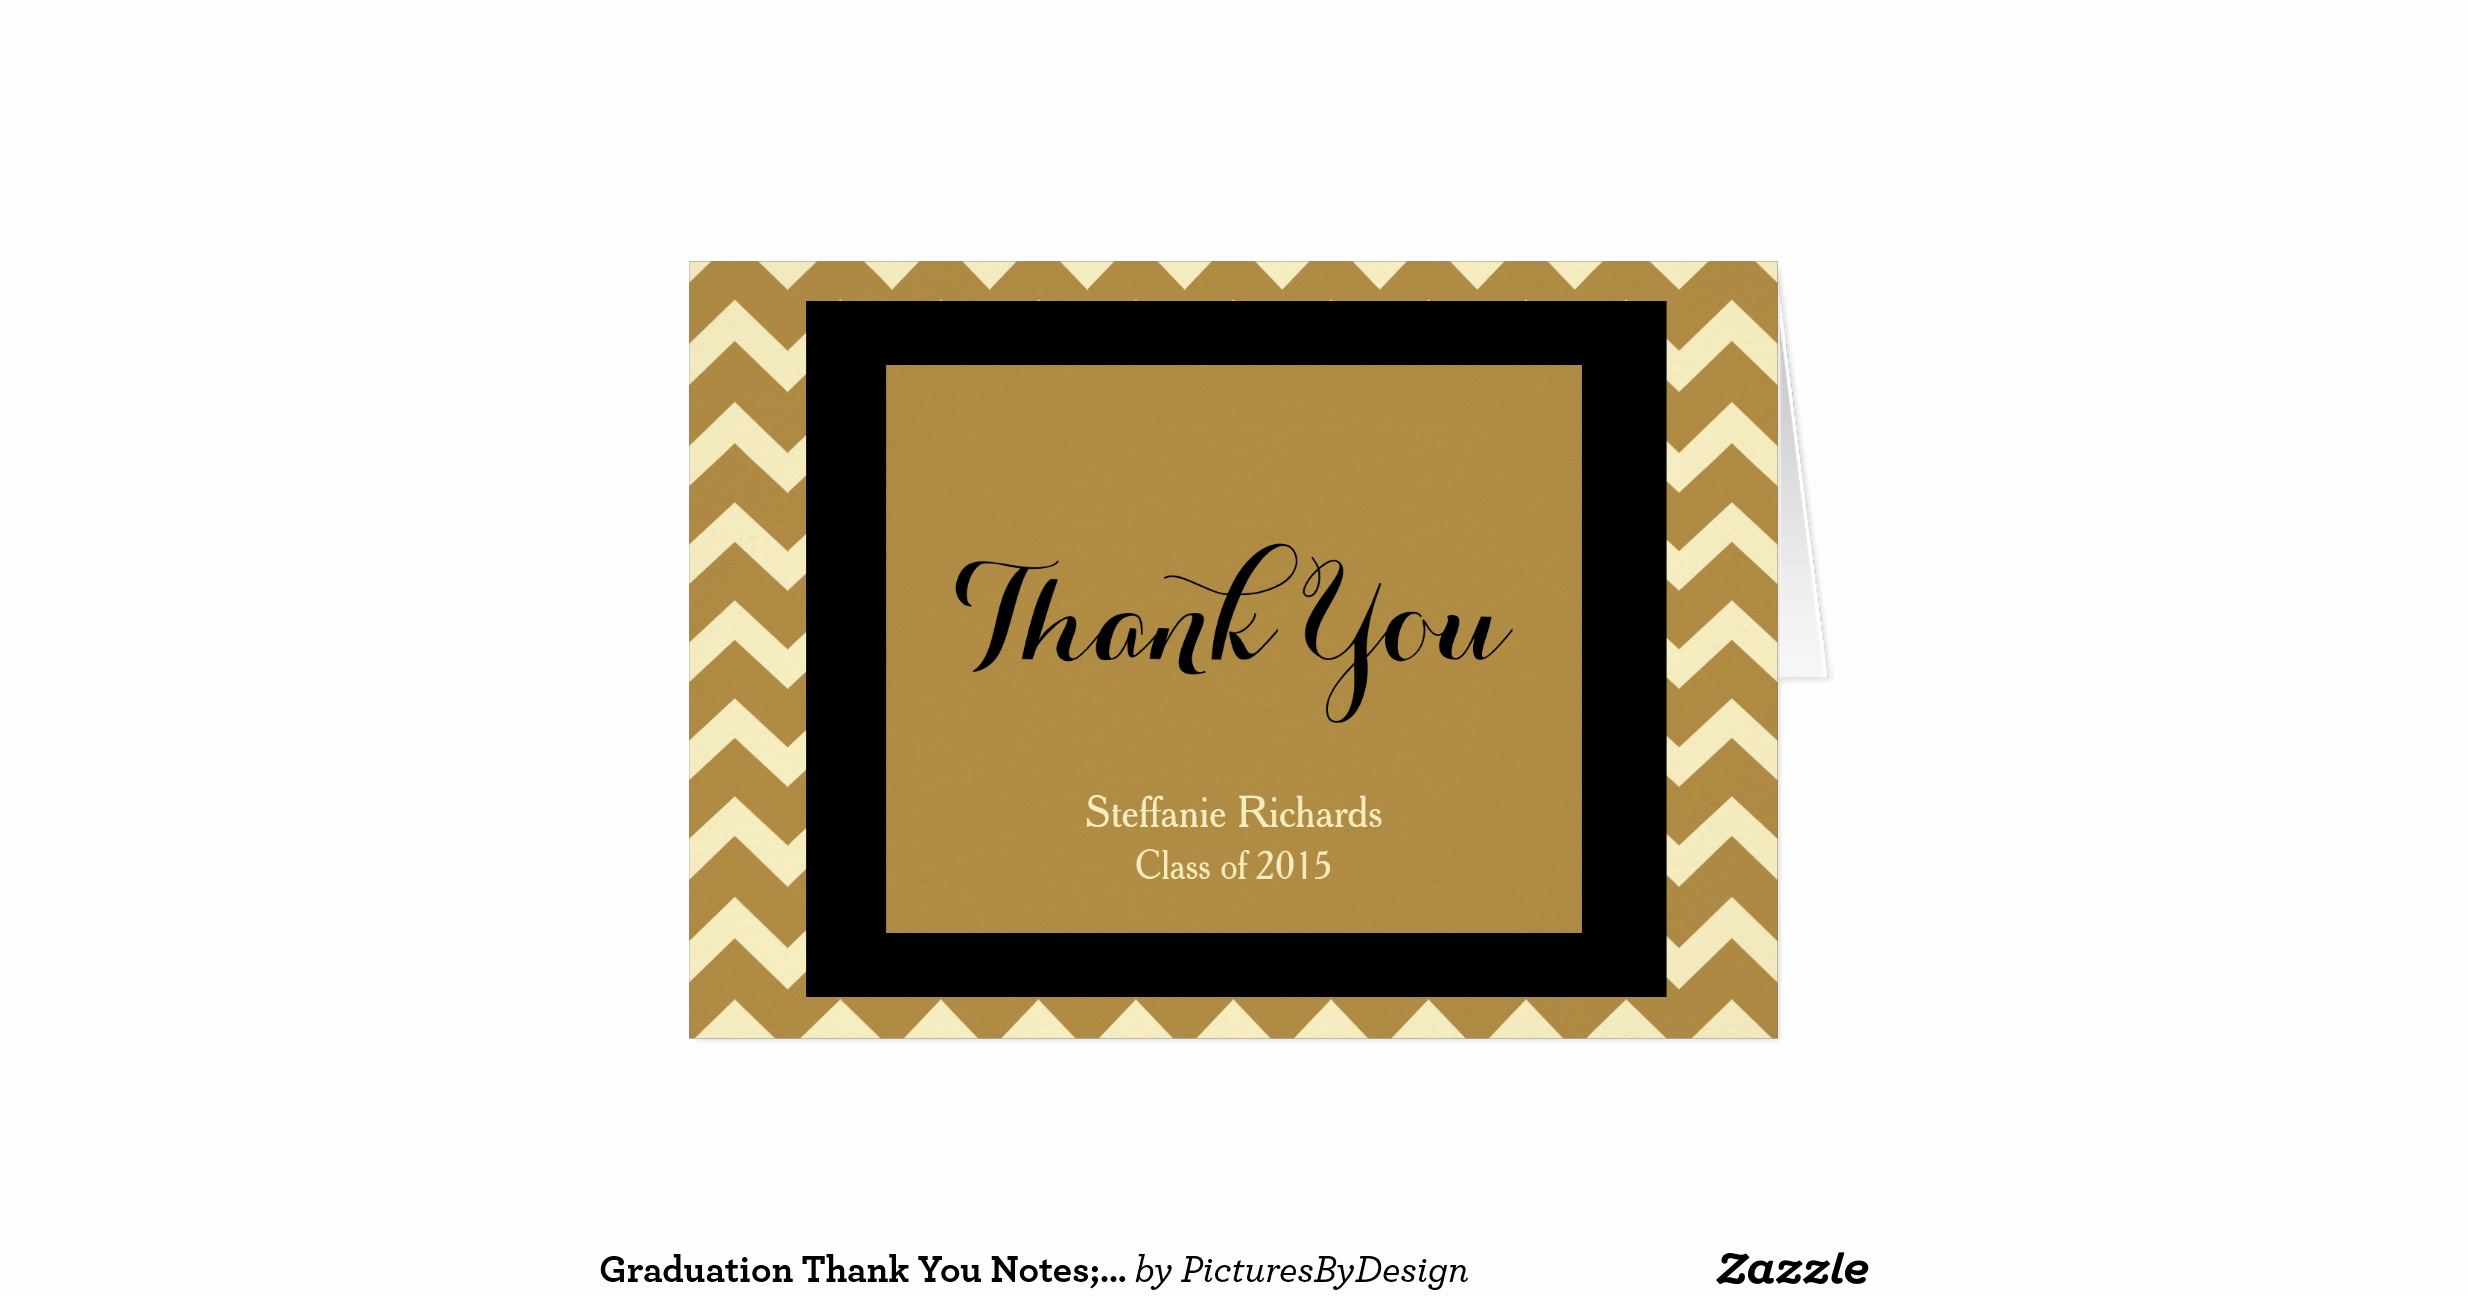 Graduation Thank You Notes New Graduation Thank You Notes Black Gold & Cream Greeting